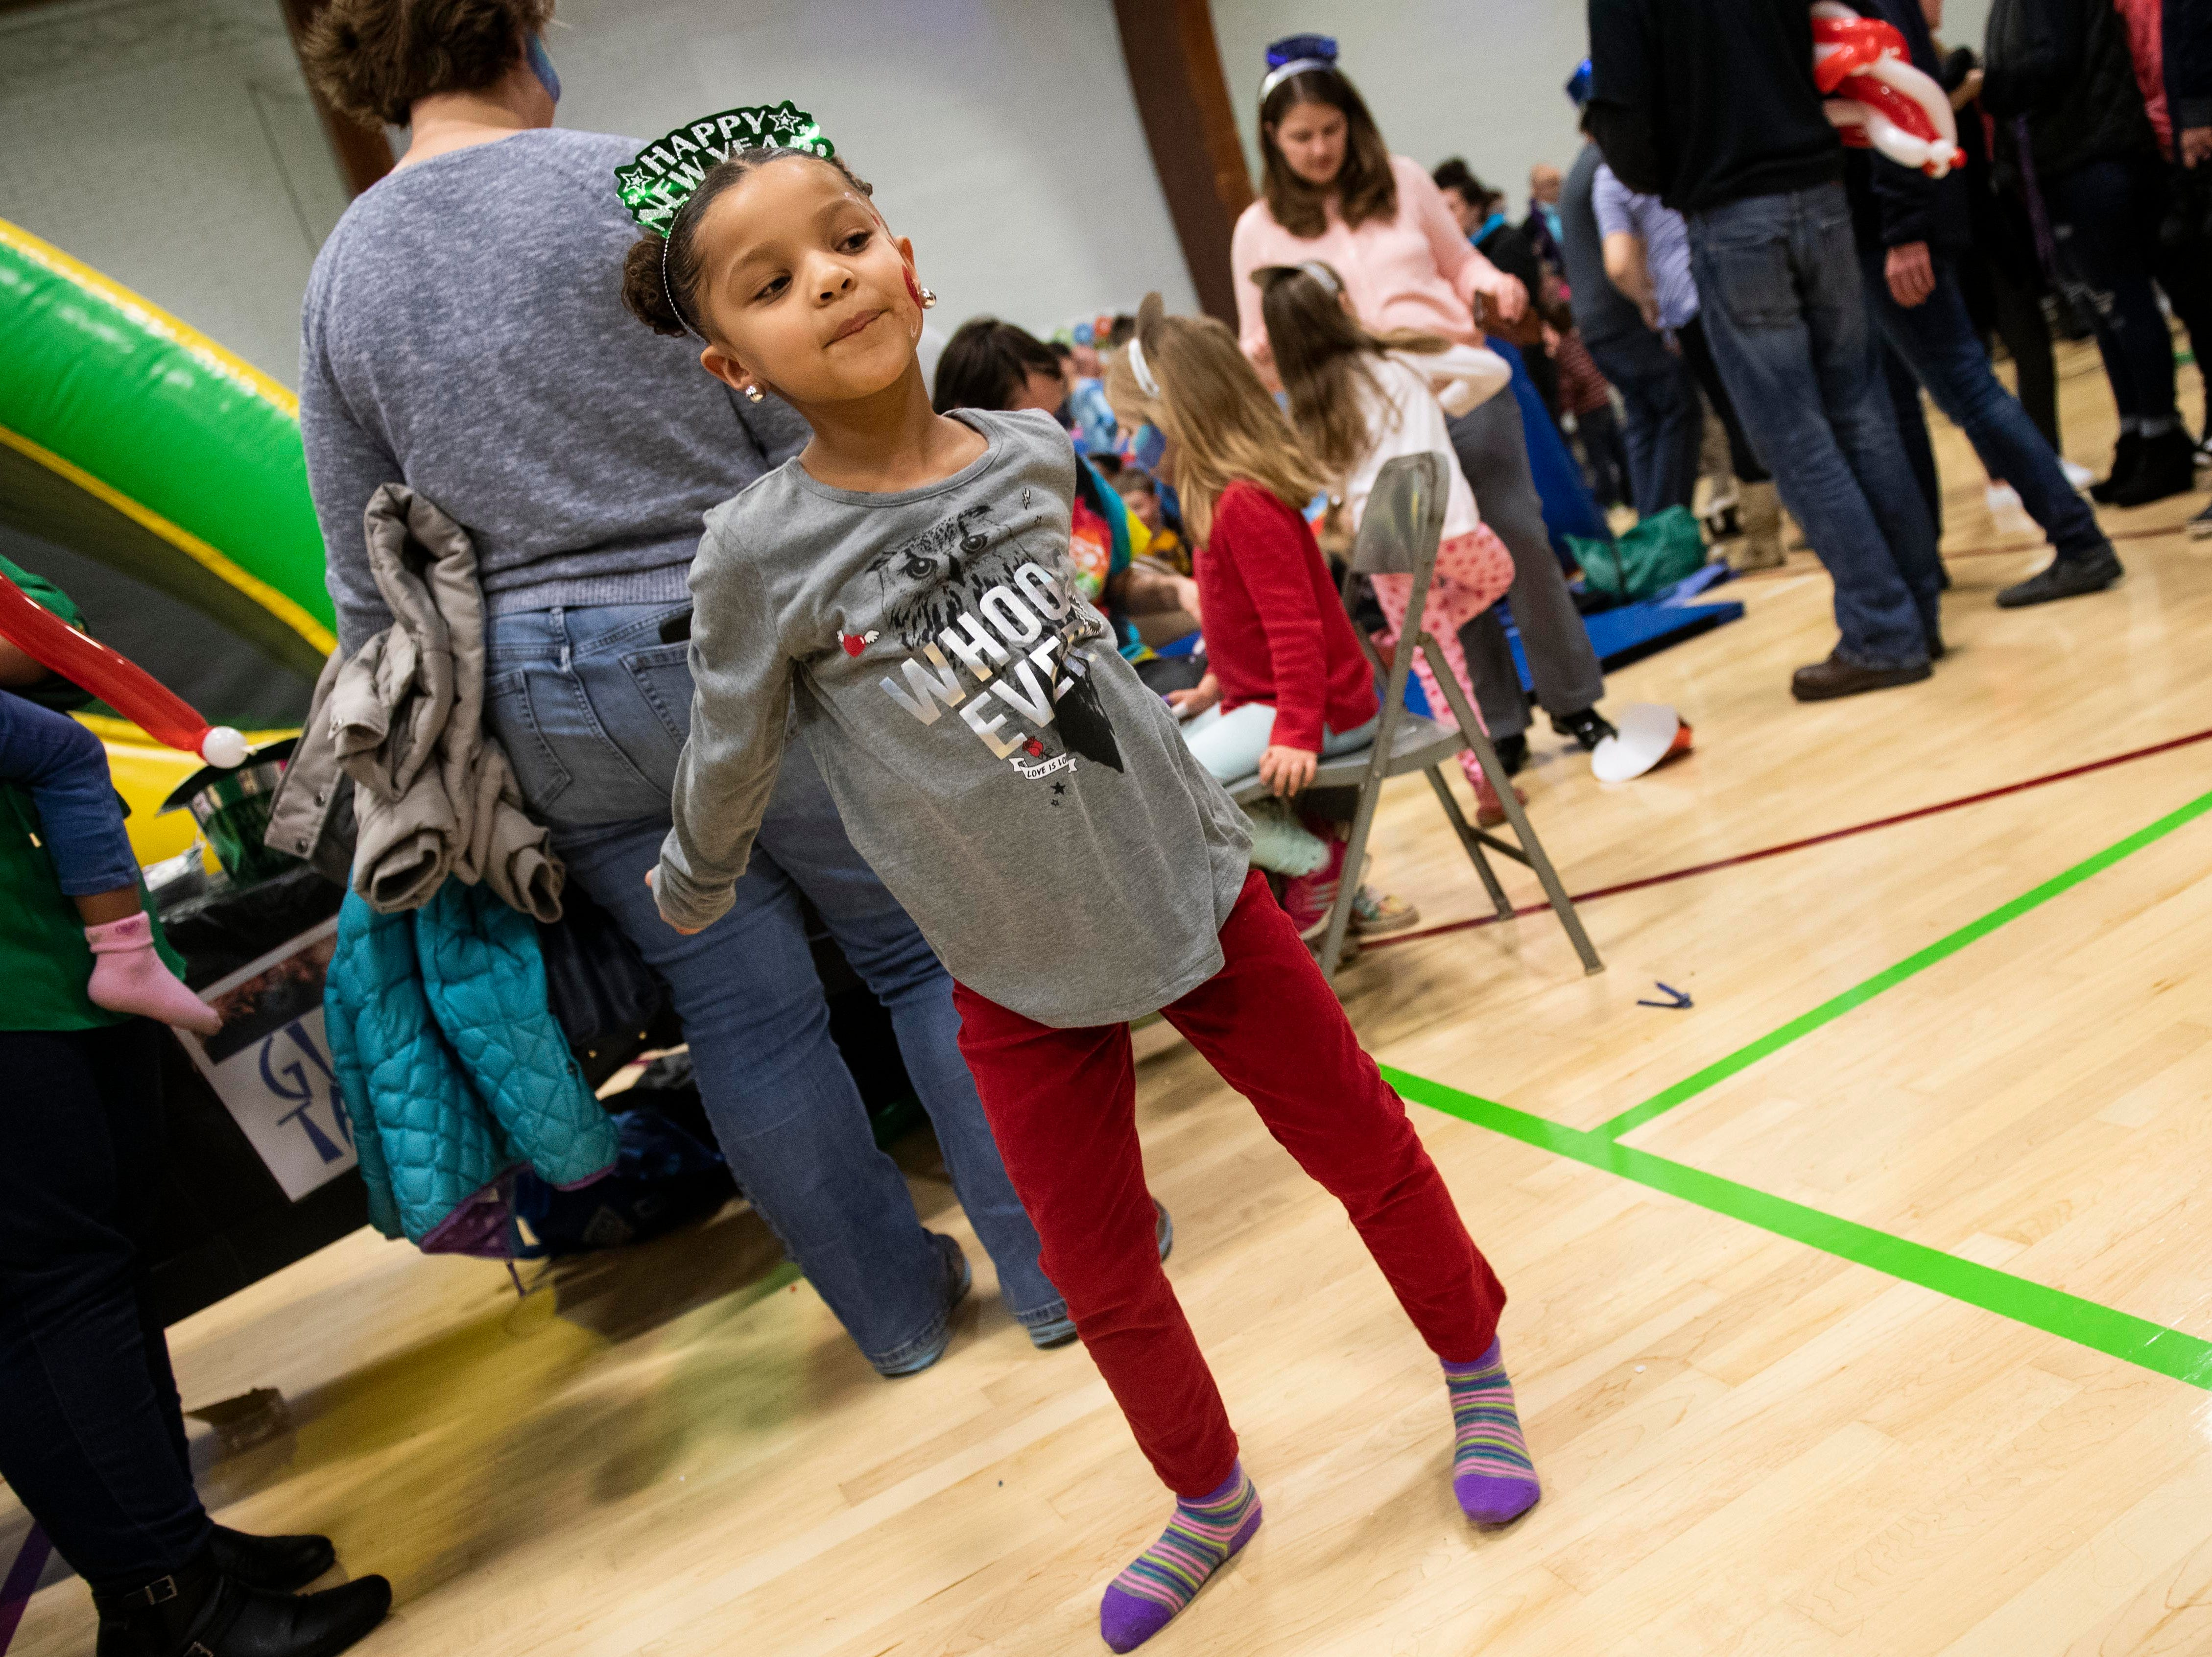 Lola Rae Gomez, 5, dances during the Children's Countdown to 2019 event at Voni Grimes Gym, Monday, Dec. 31, 2018. Hundreds of kids rang in 2019 with a balloon drop at 8 p.m.